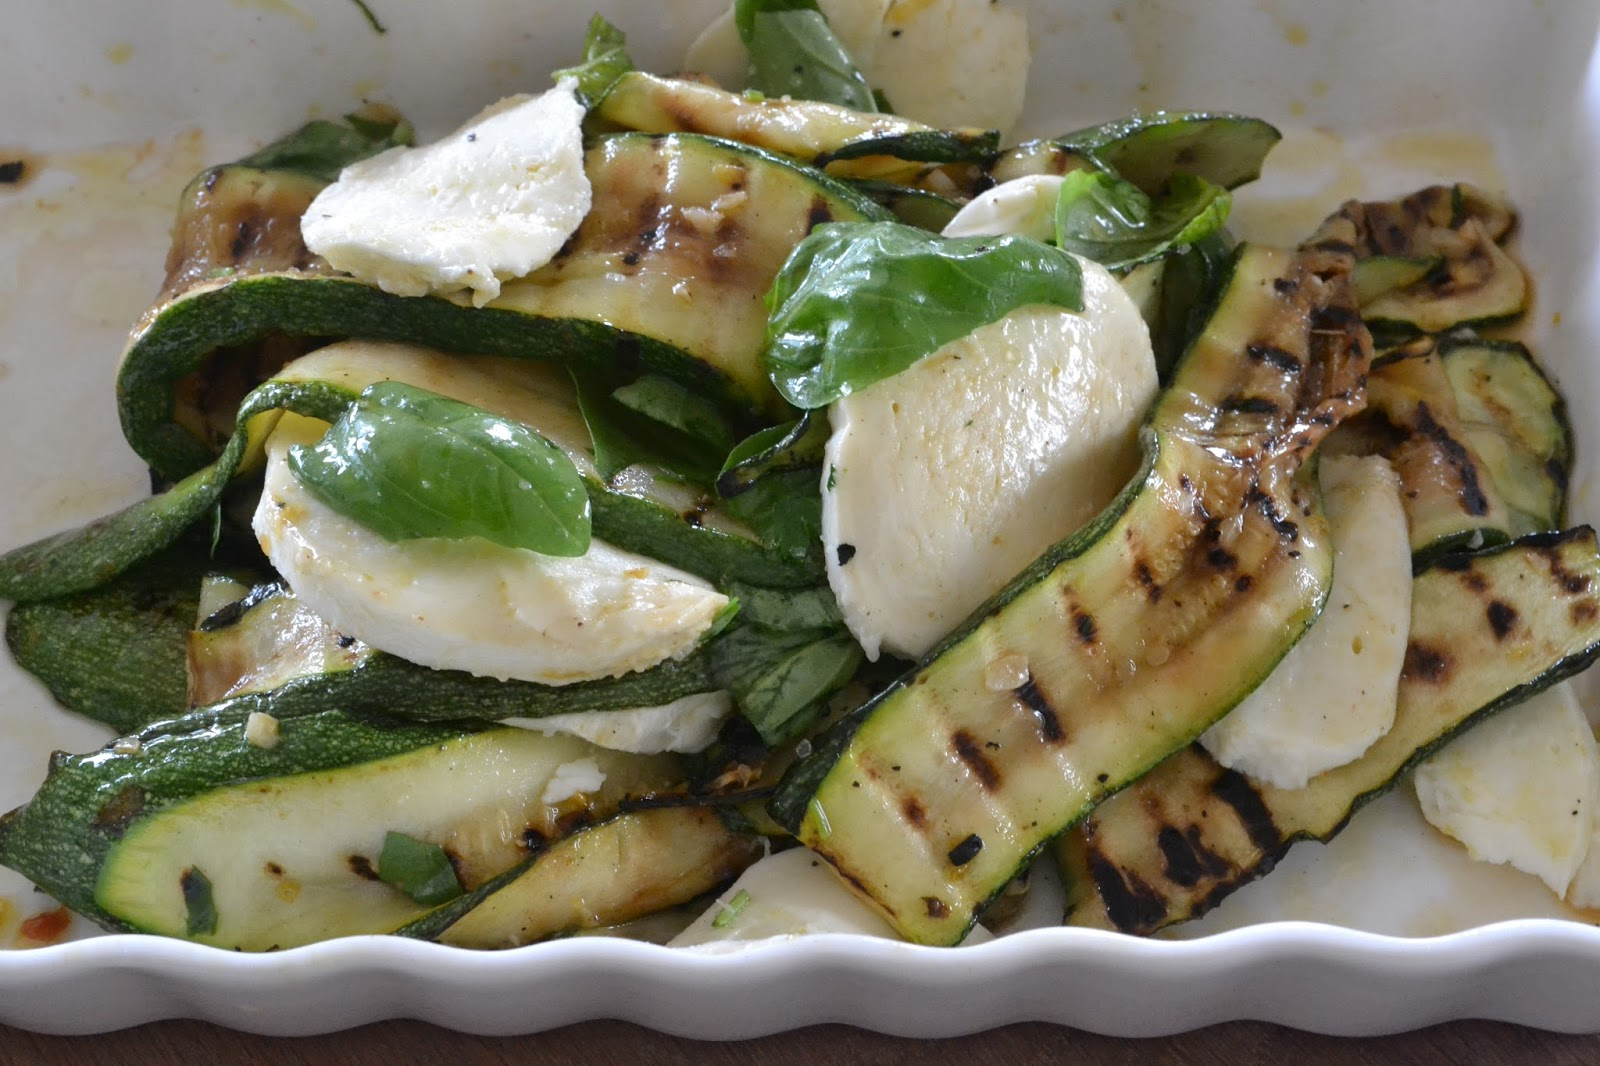 courgette oven grillen